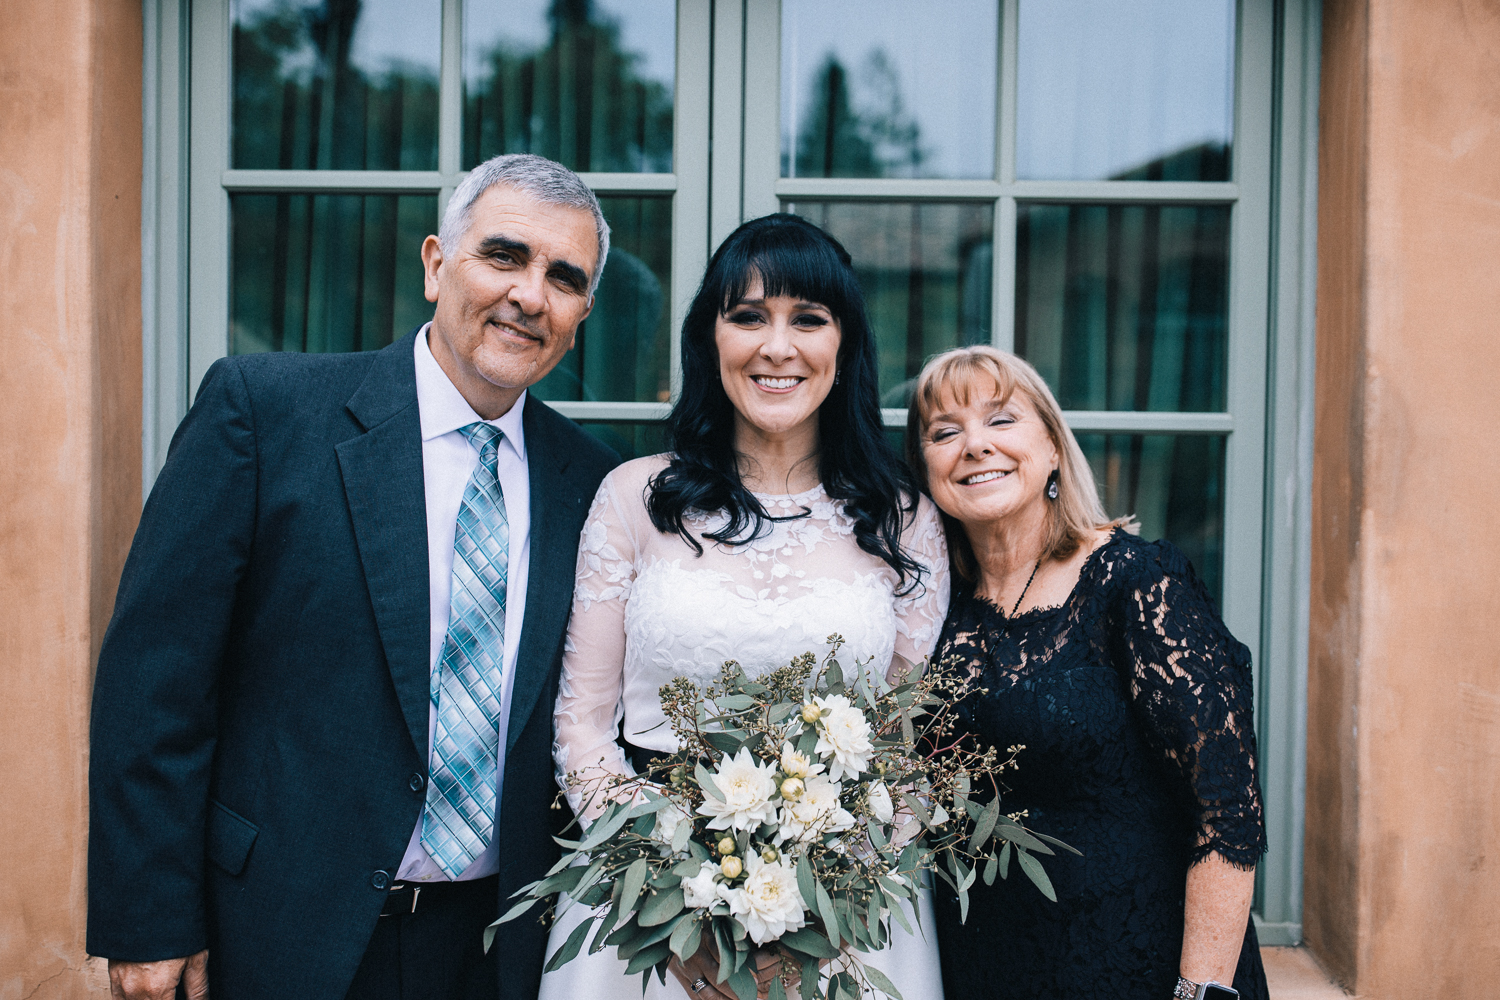 2019_05_ 182019.05.19 Lisa + Eddie South Bay Wedding Blog Photos Edited For Web 0055.jpg